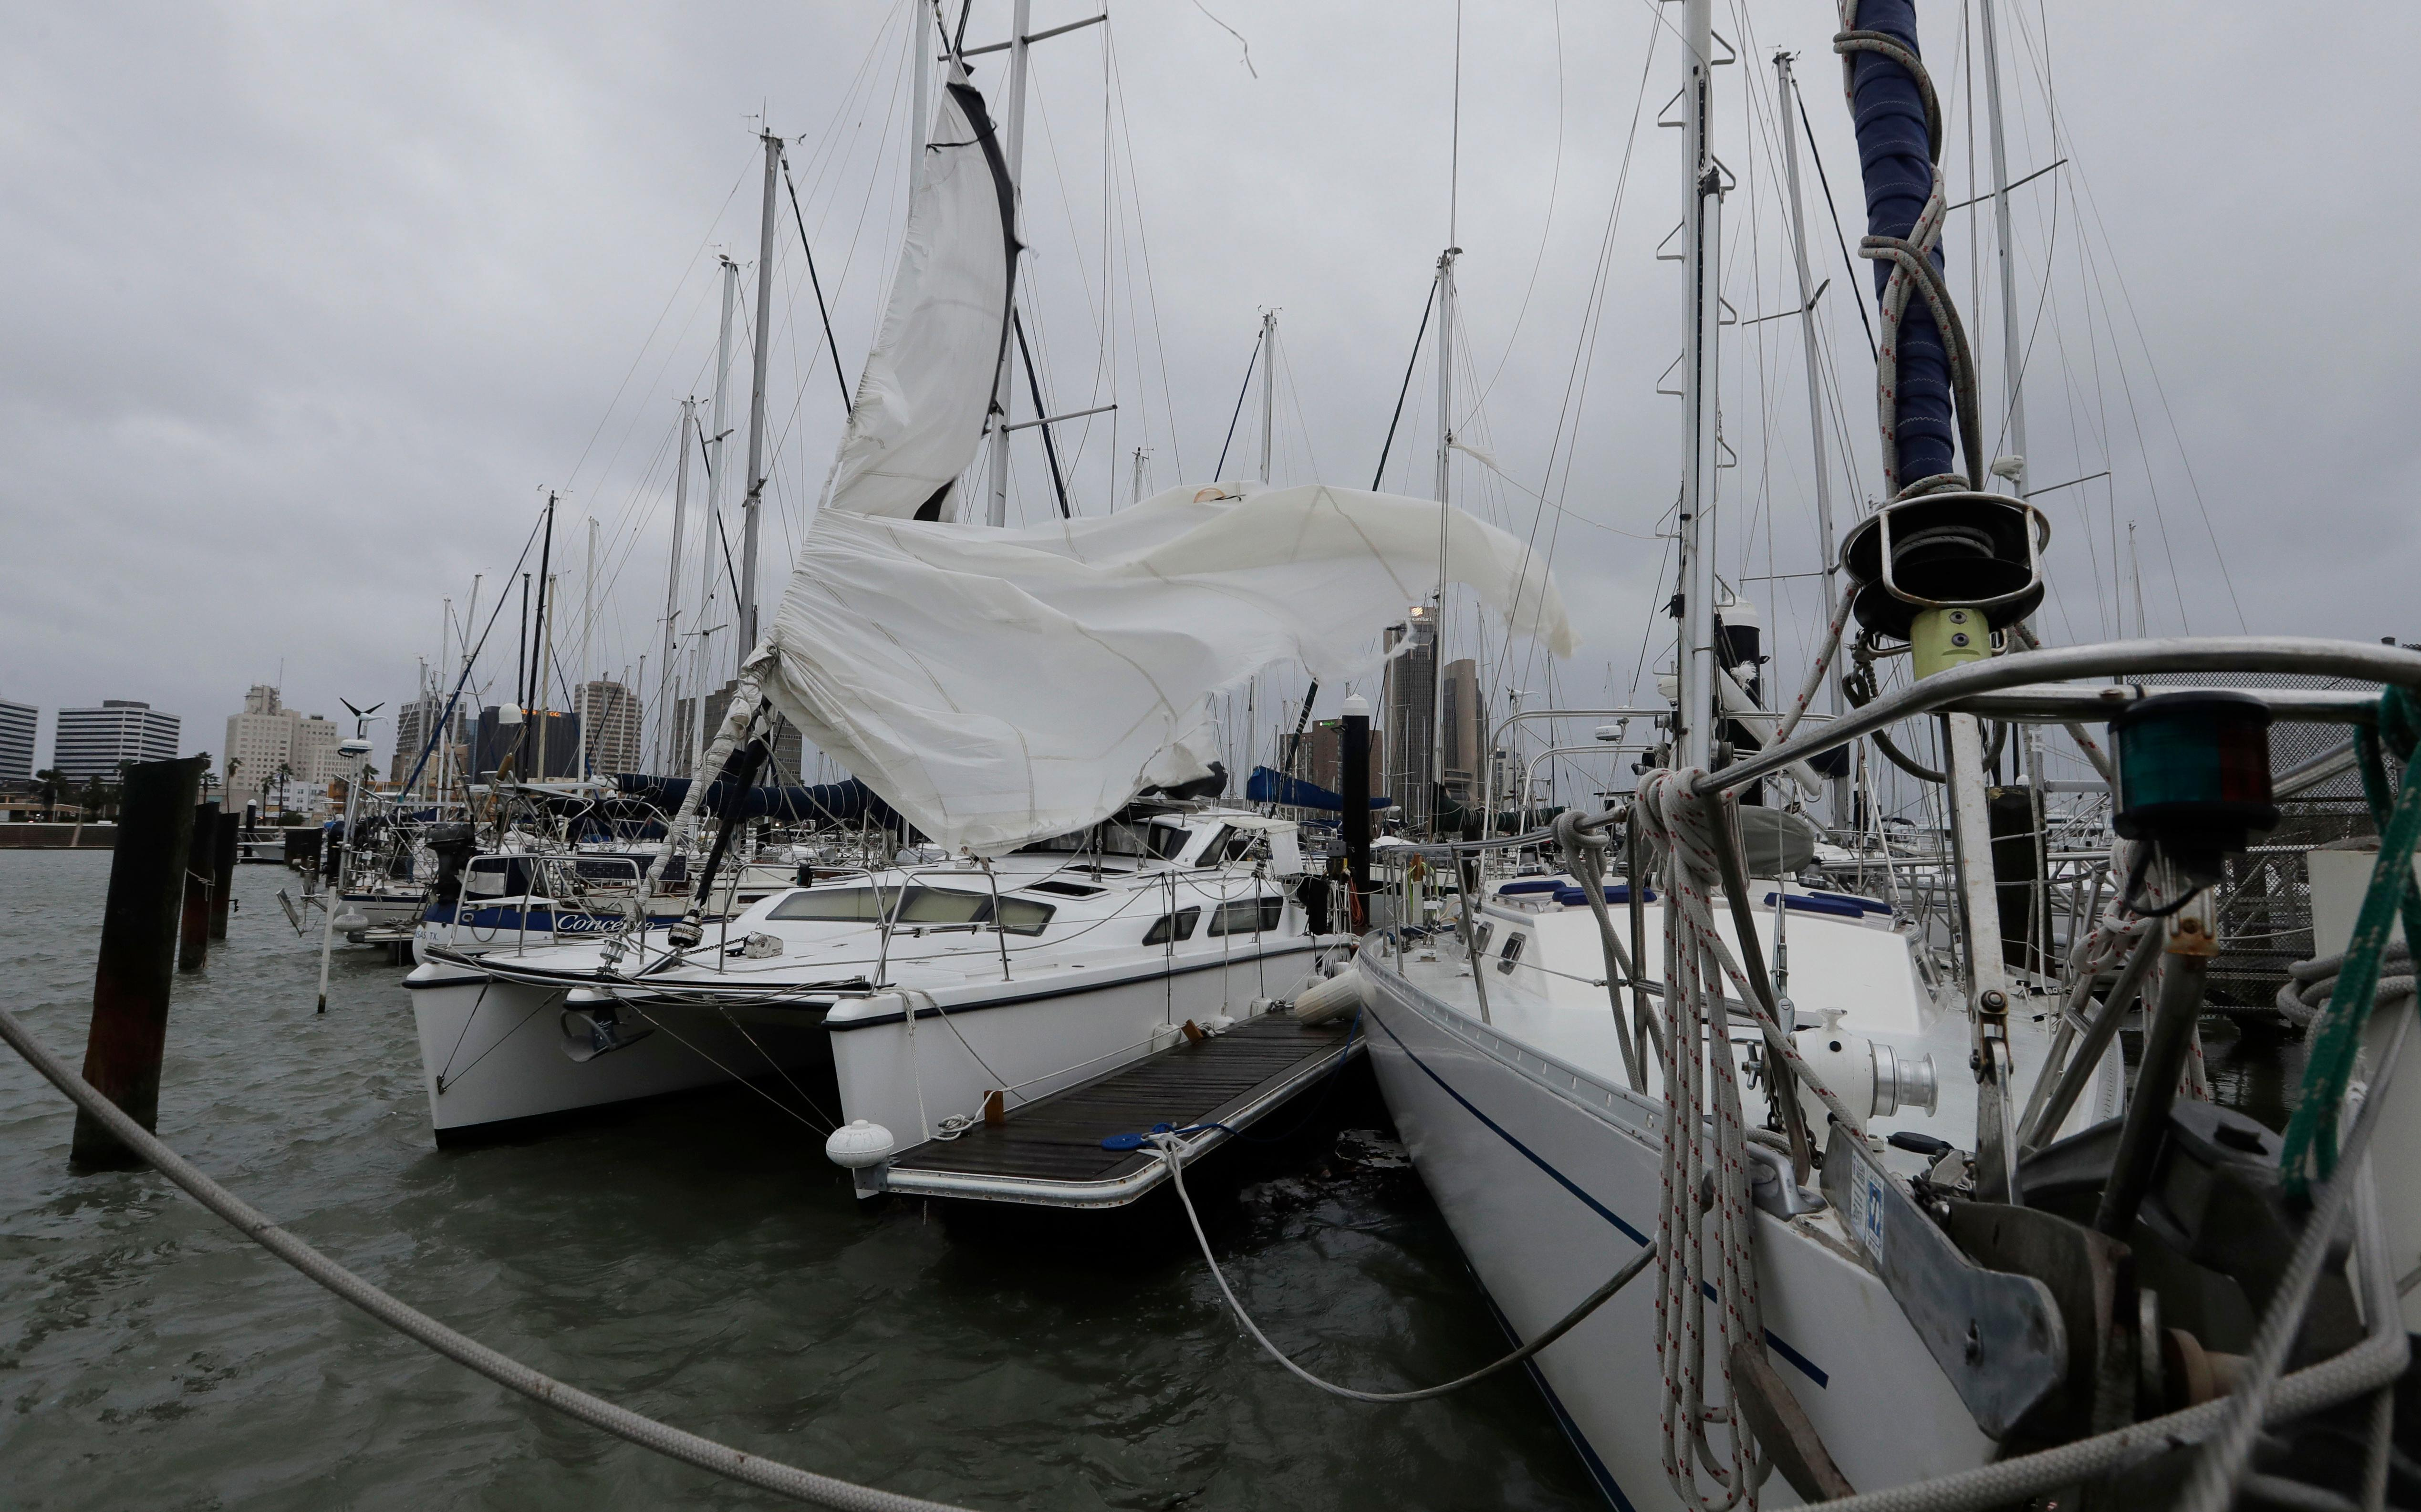 Ripped sails of boats whip in the wind, damaged by Hurricane Harvey, Saturday, Aug. 26, 2017, in Corpus Christi, Texas. Harvey has been further downgraded to a Category 1 hurricane as it churns slowly inland from the Texas Gulf Coast, already depositing more than 9 inches of rain in South Texas.  (AP Photo/Eric Gay)